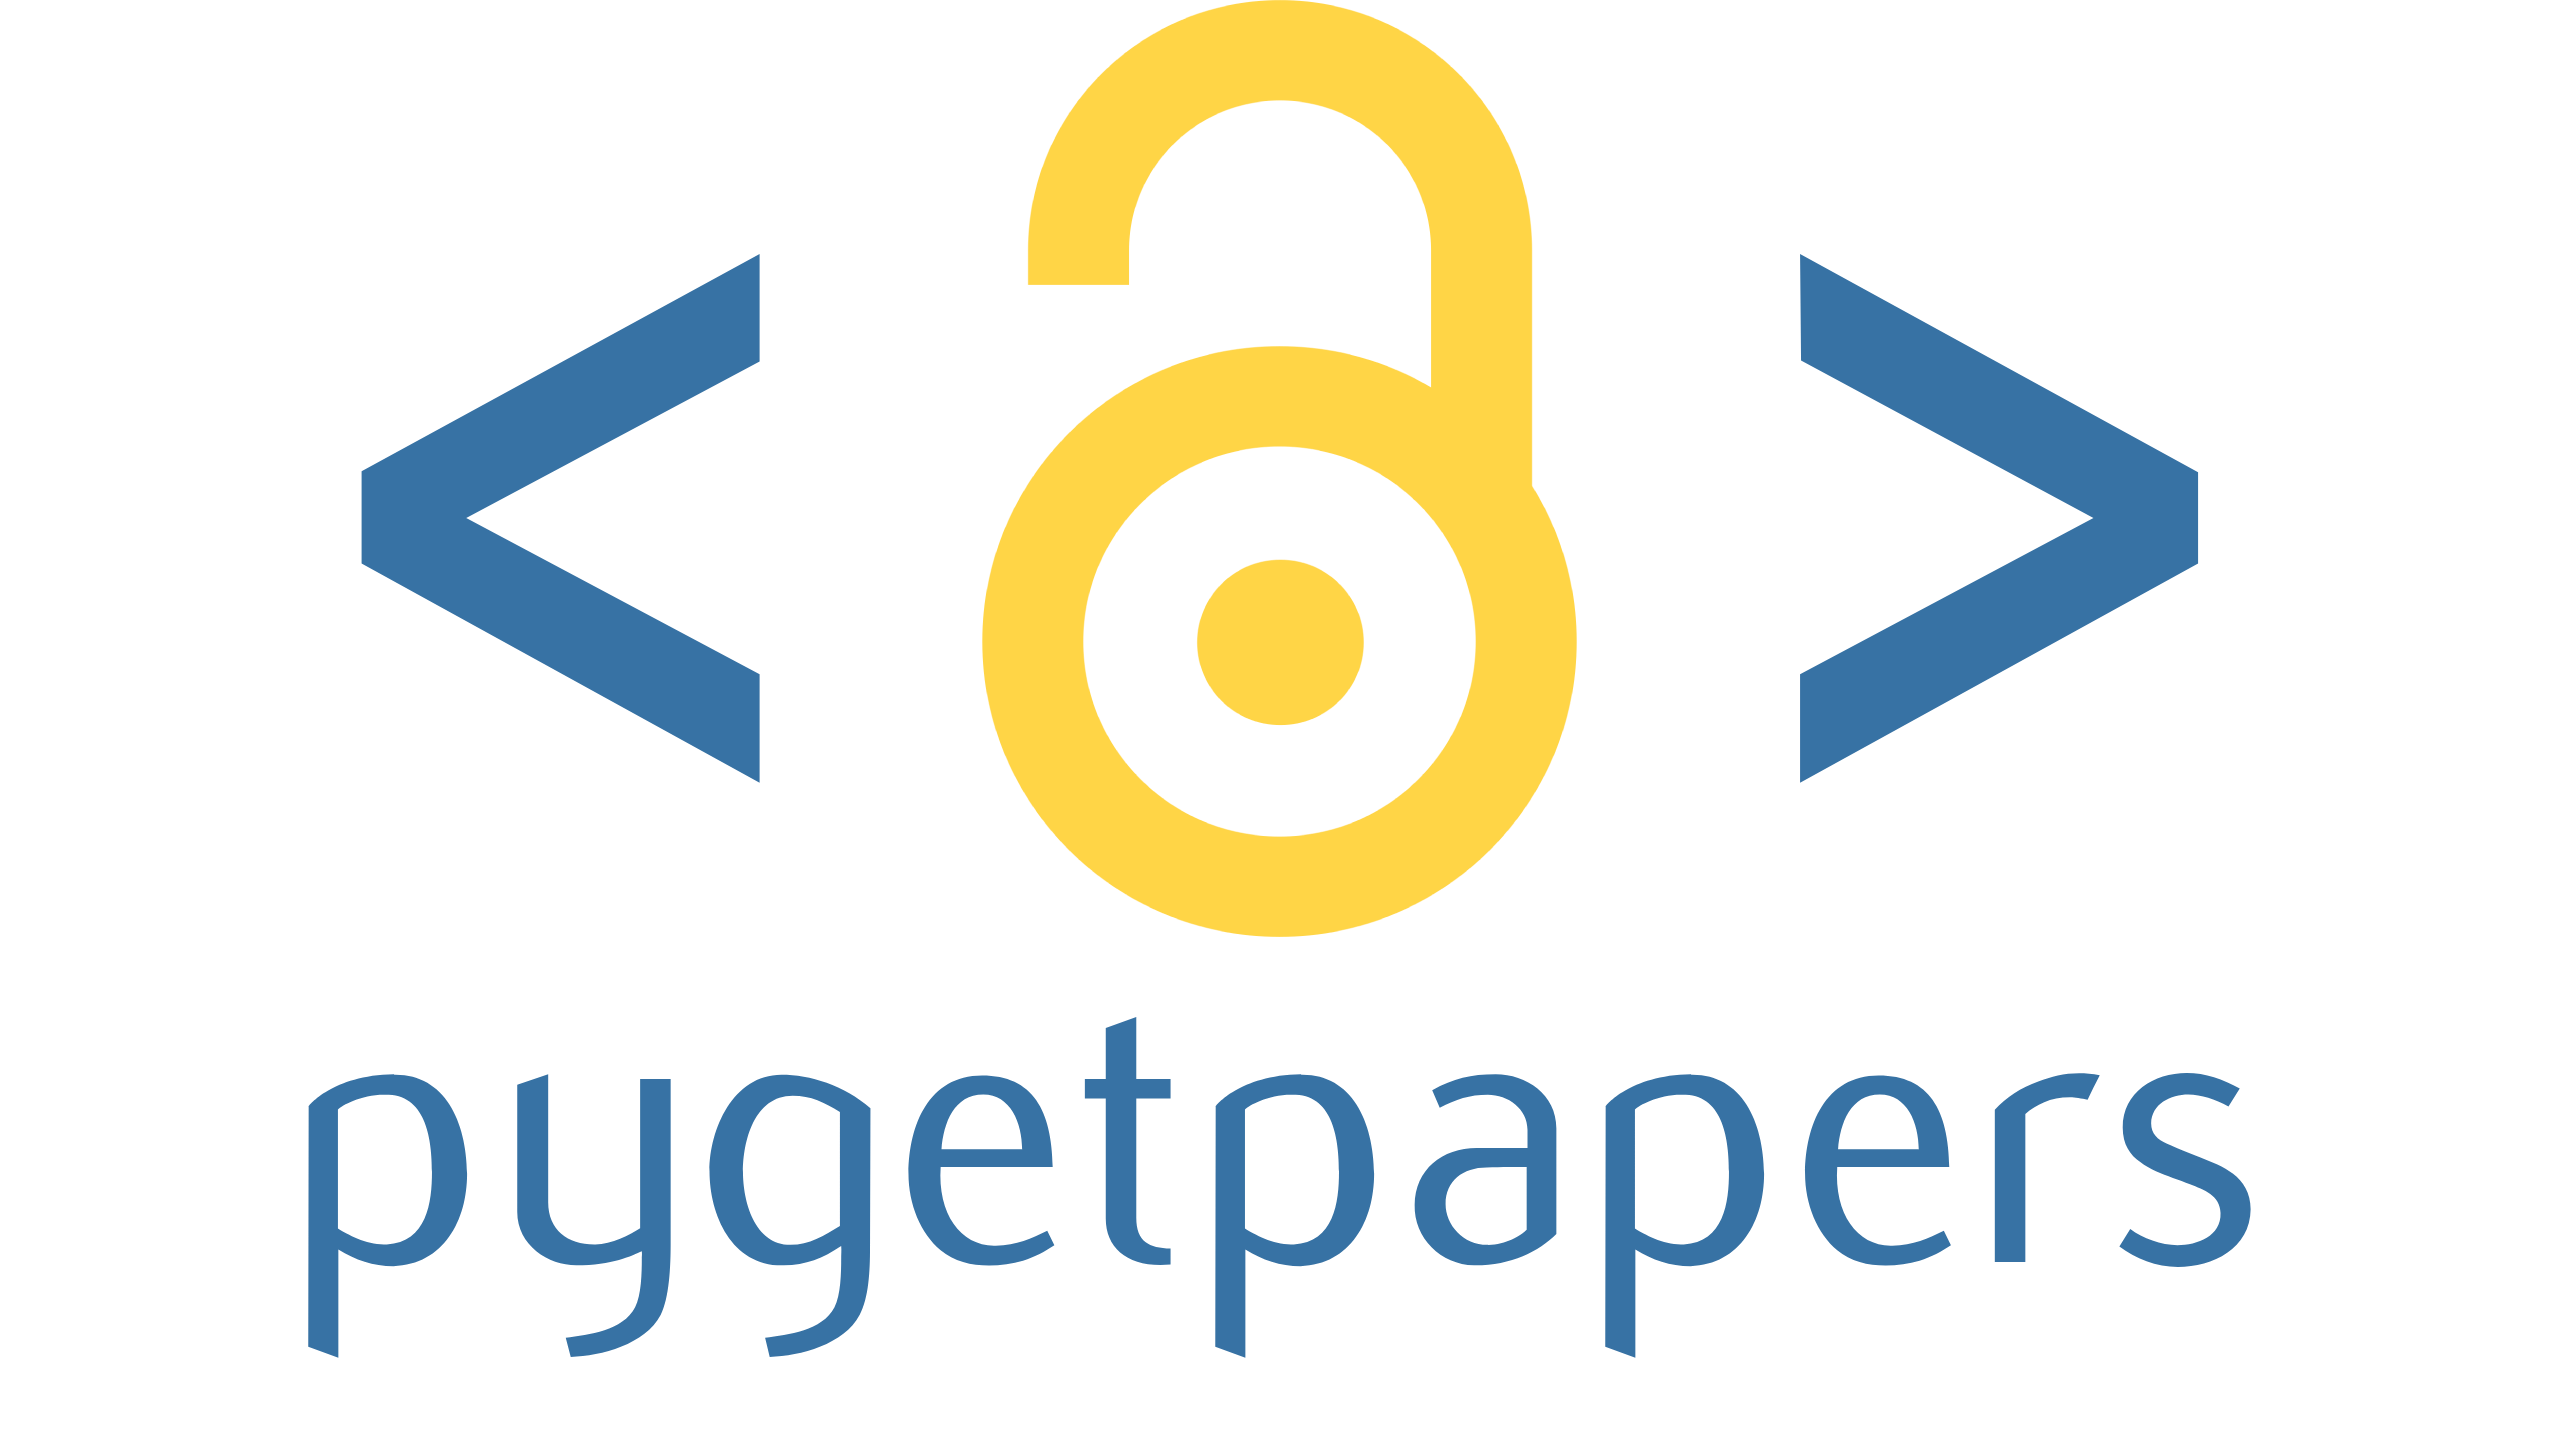 pygetpapers